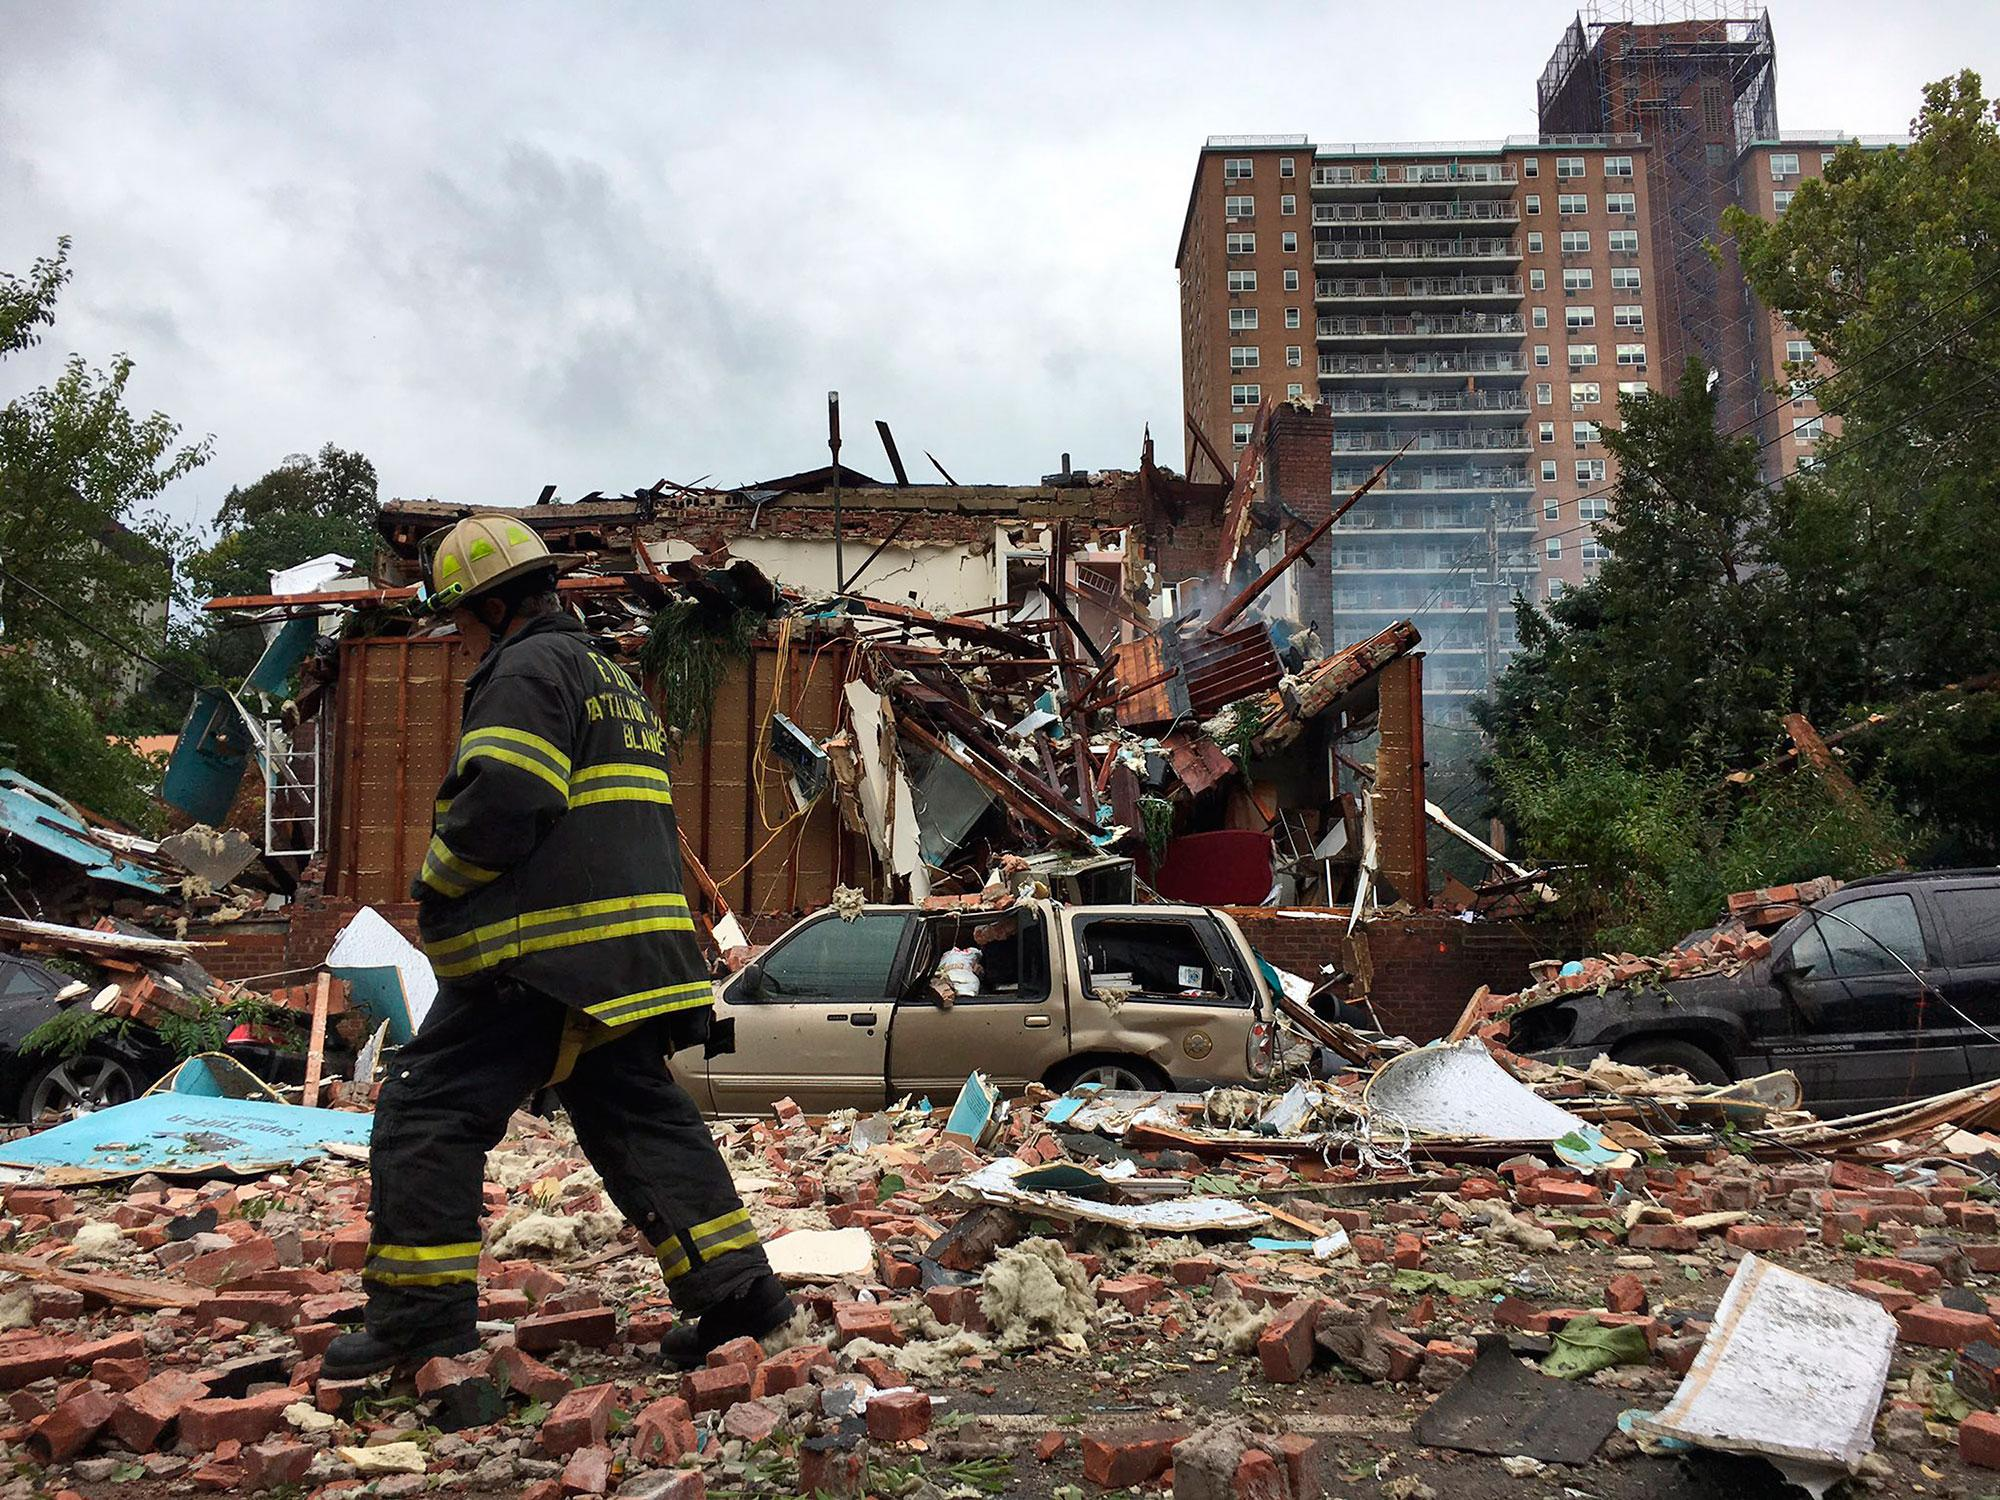 Deadly house explosion in the Bronx